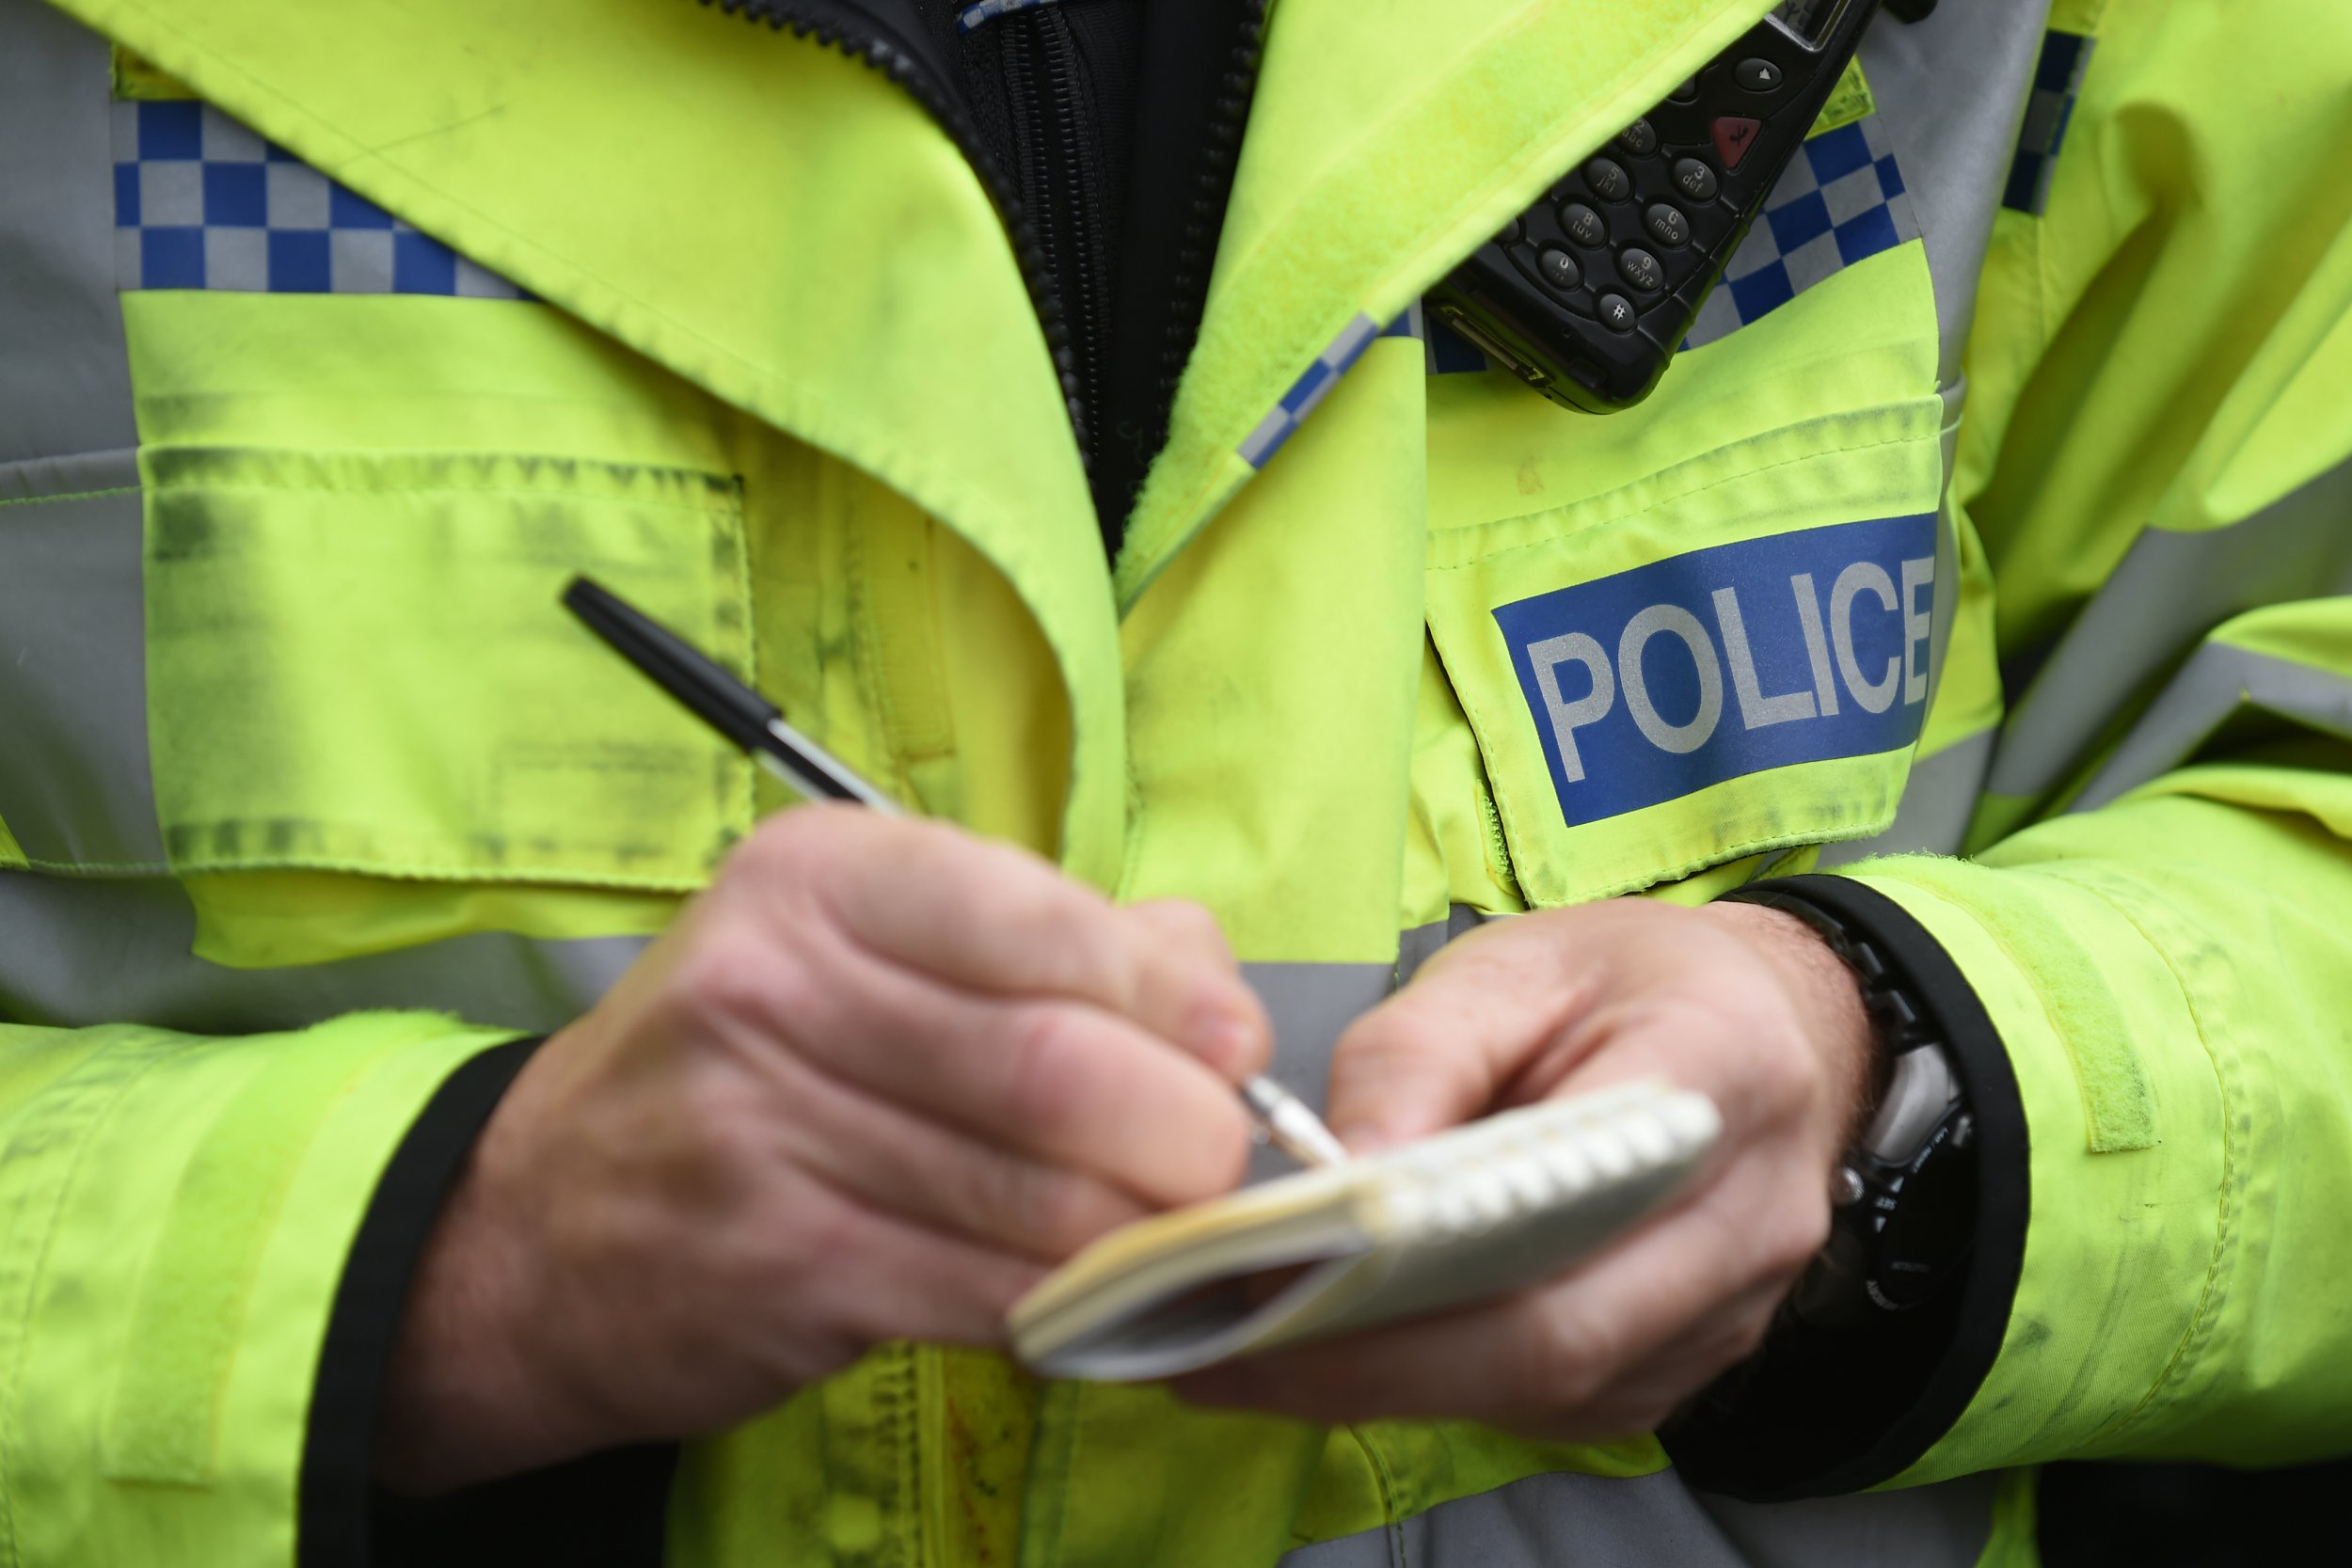 Police officer sacked for having sex with missing teenager